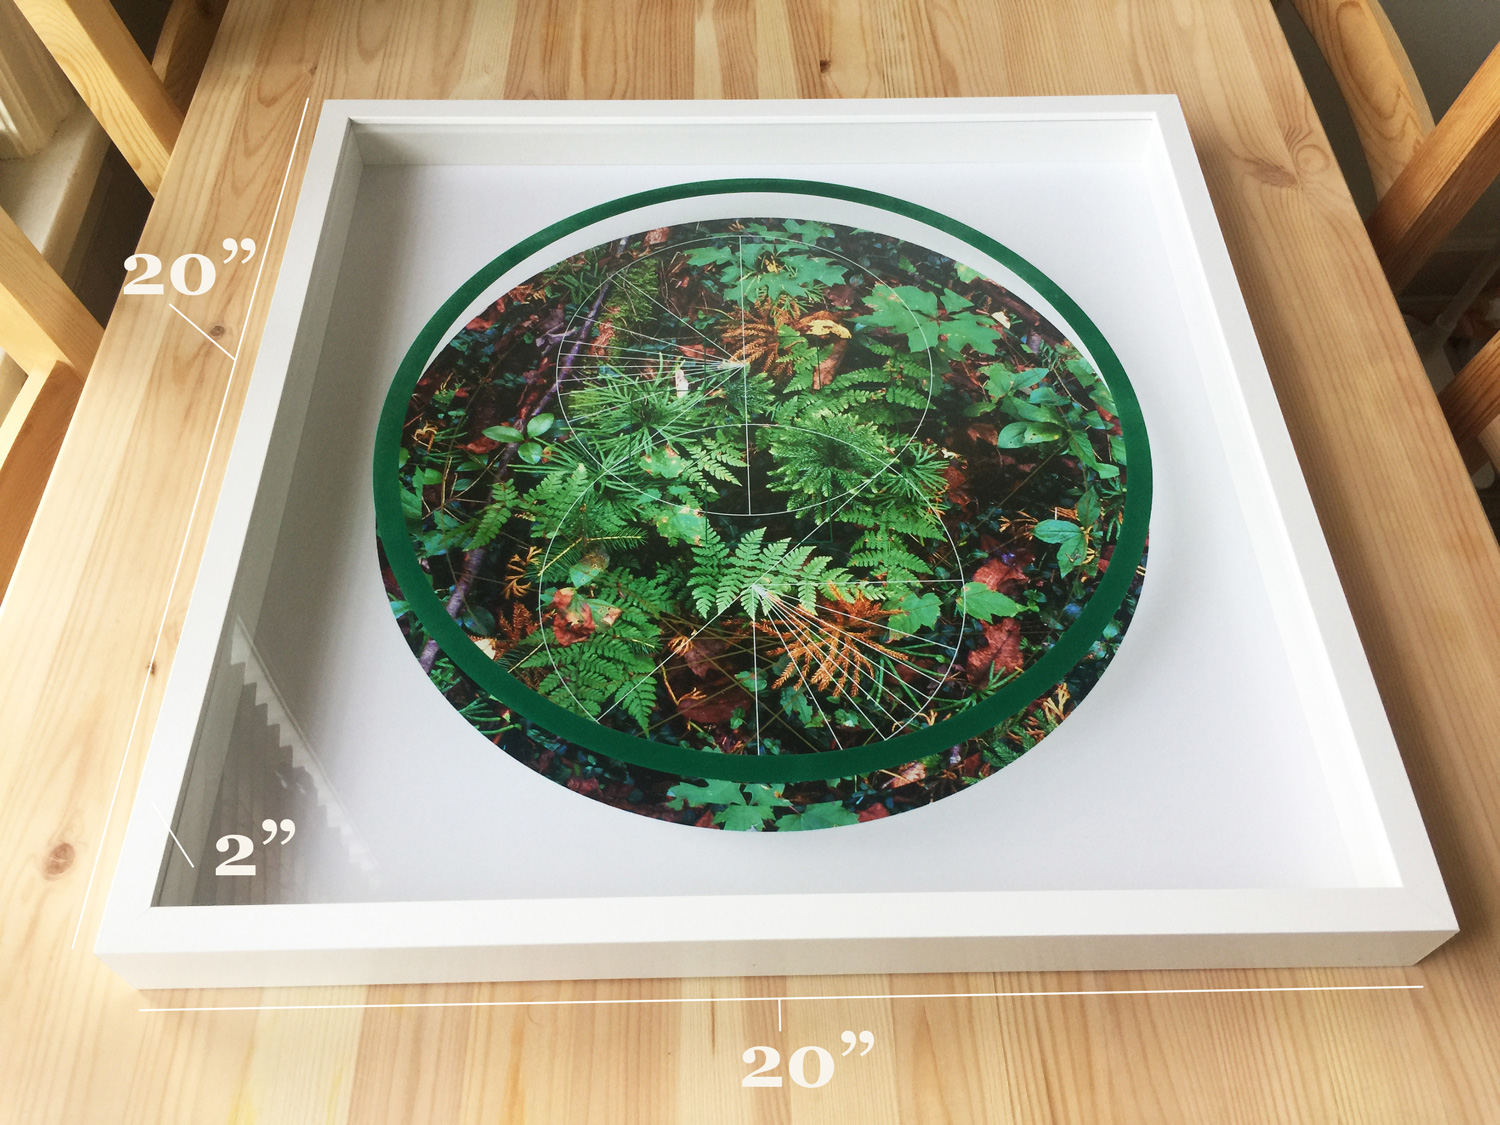 Rainier-Botany-1-detail-table-with-numbers.jpg